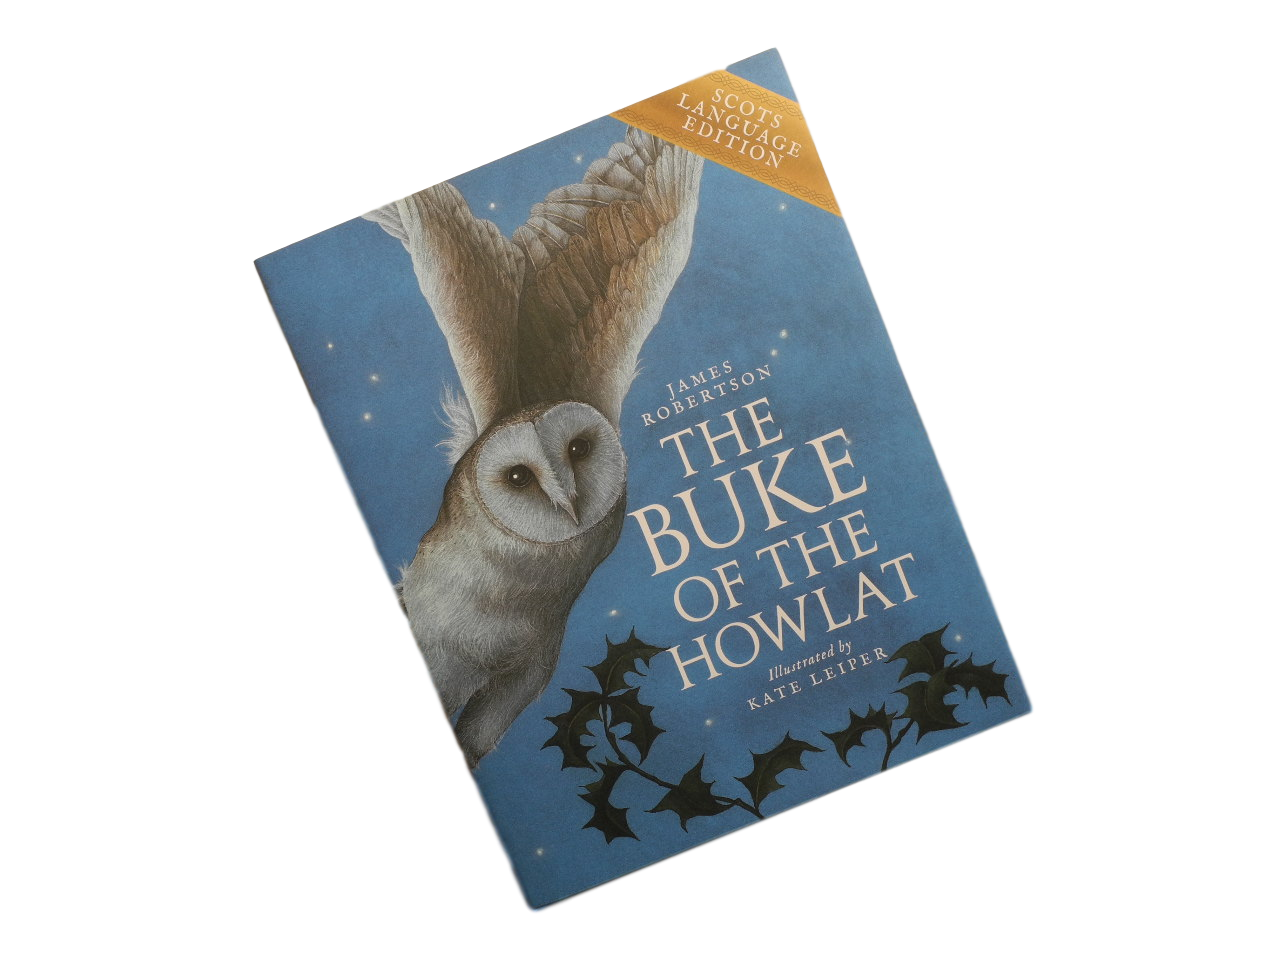 Childrens book owl scots language